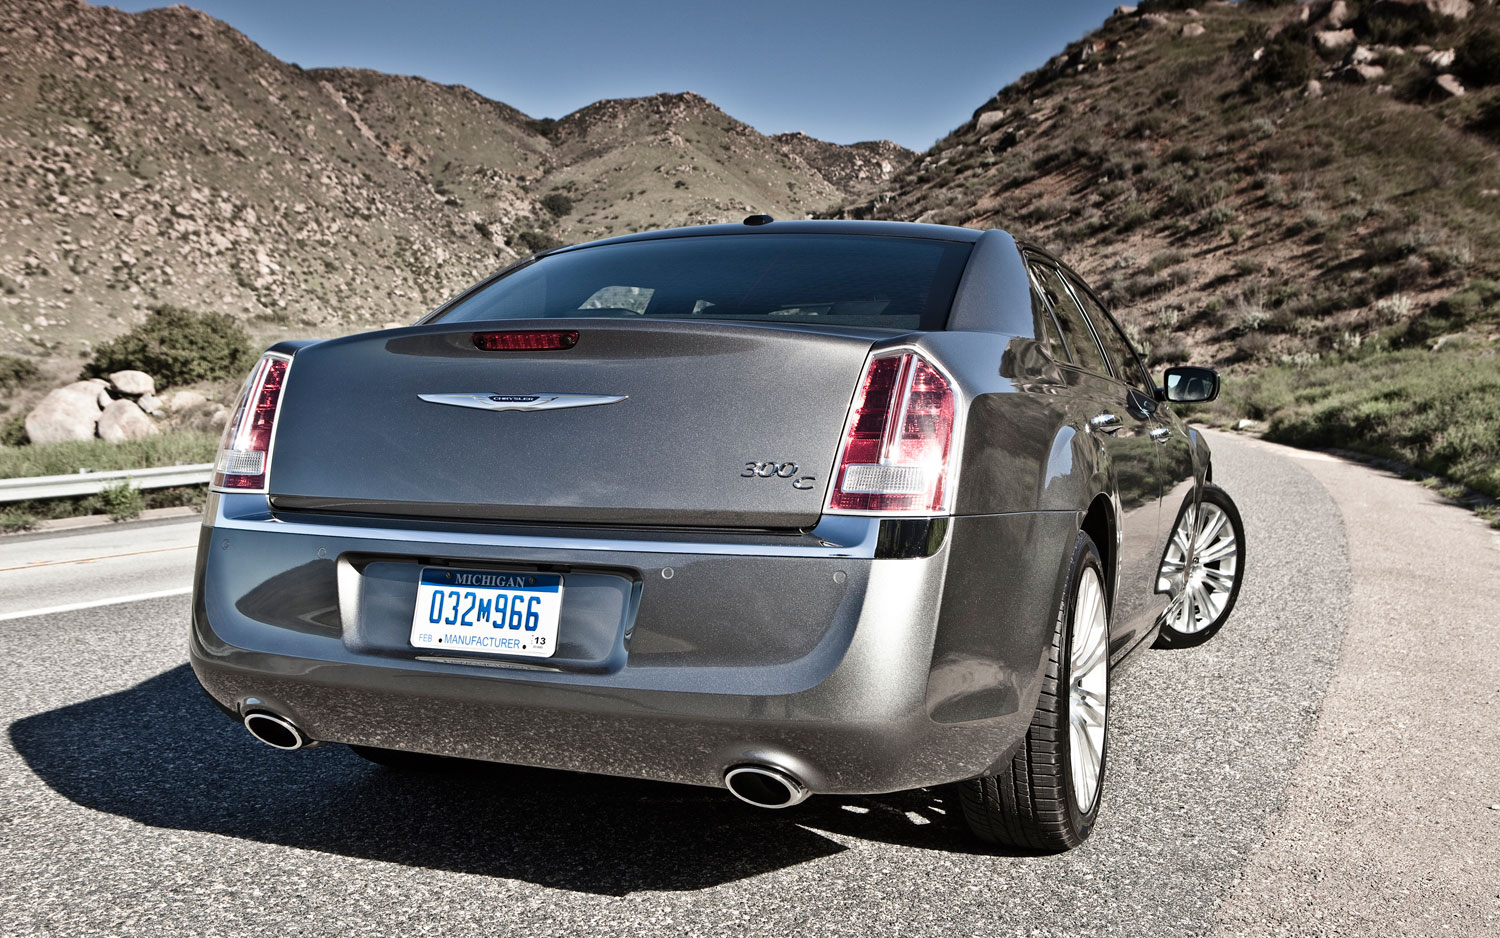 2012 Chrysler 300C Rear1